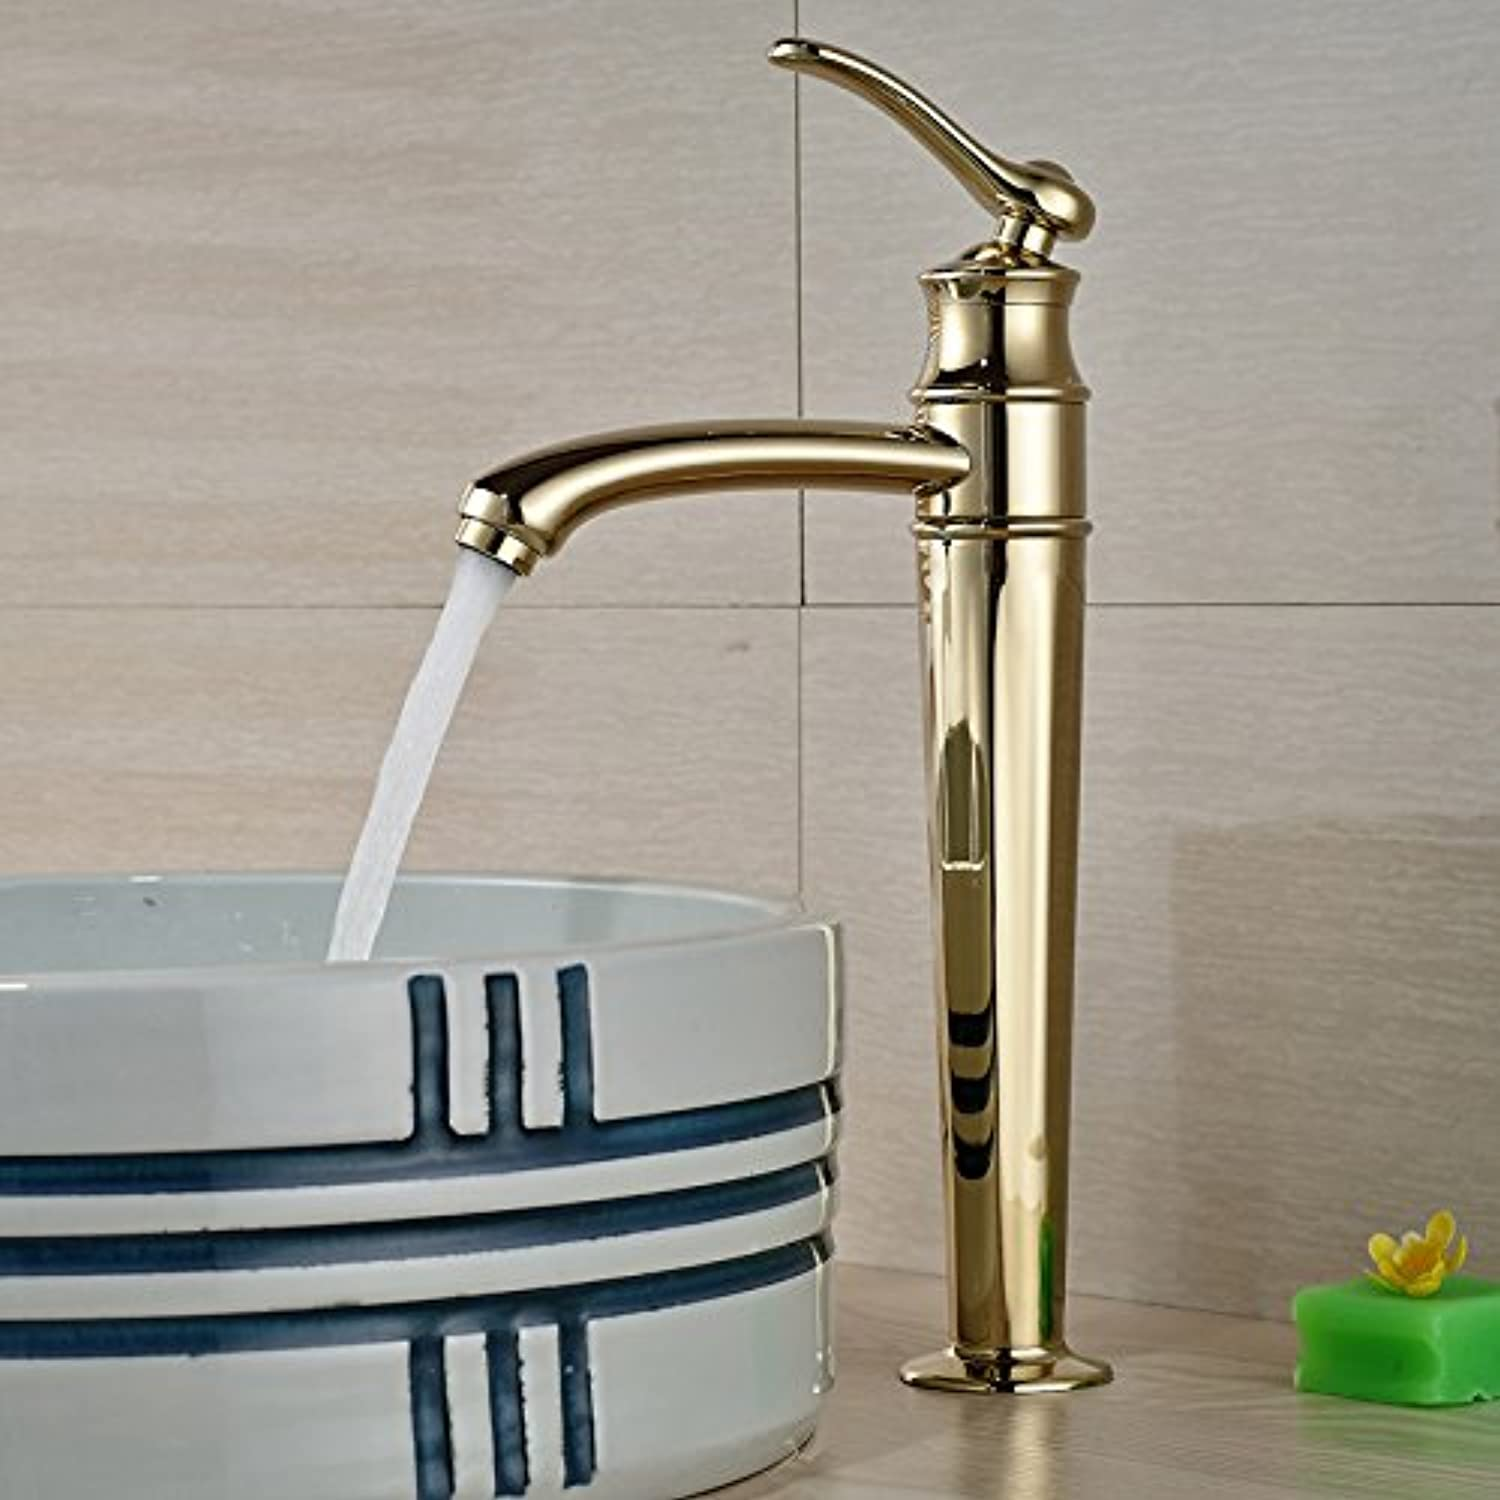 Maifeini New Single Container Handling Basin Sink Mixer Deck To Install A Copper gold Basin Faucet